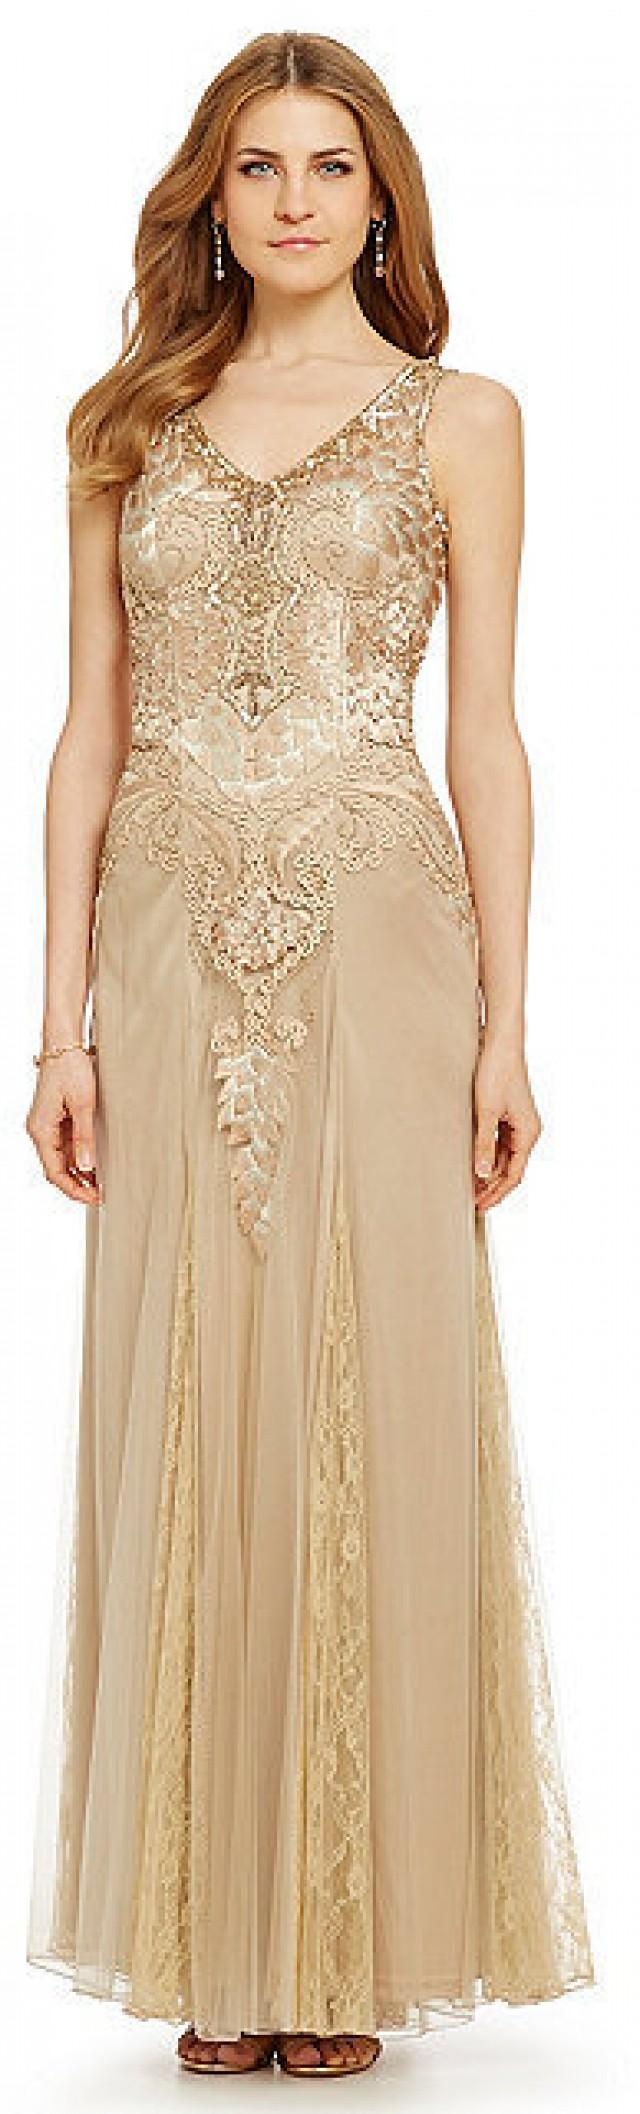 Sue wong embroidered beaded gown 2326208 weddbook for Sue wong robes de mariage